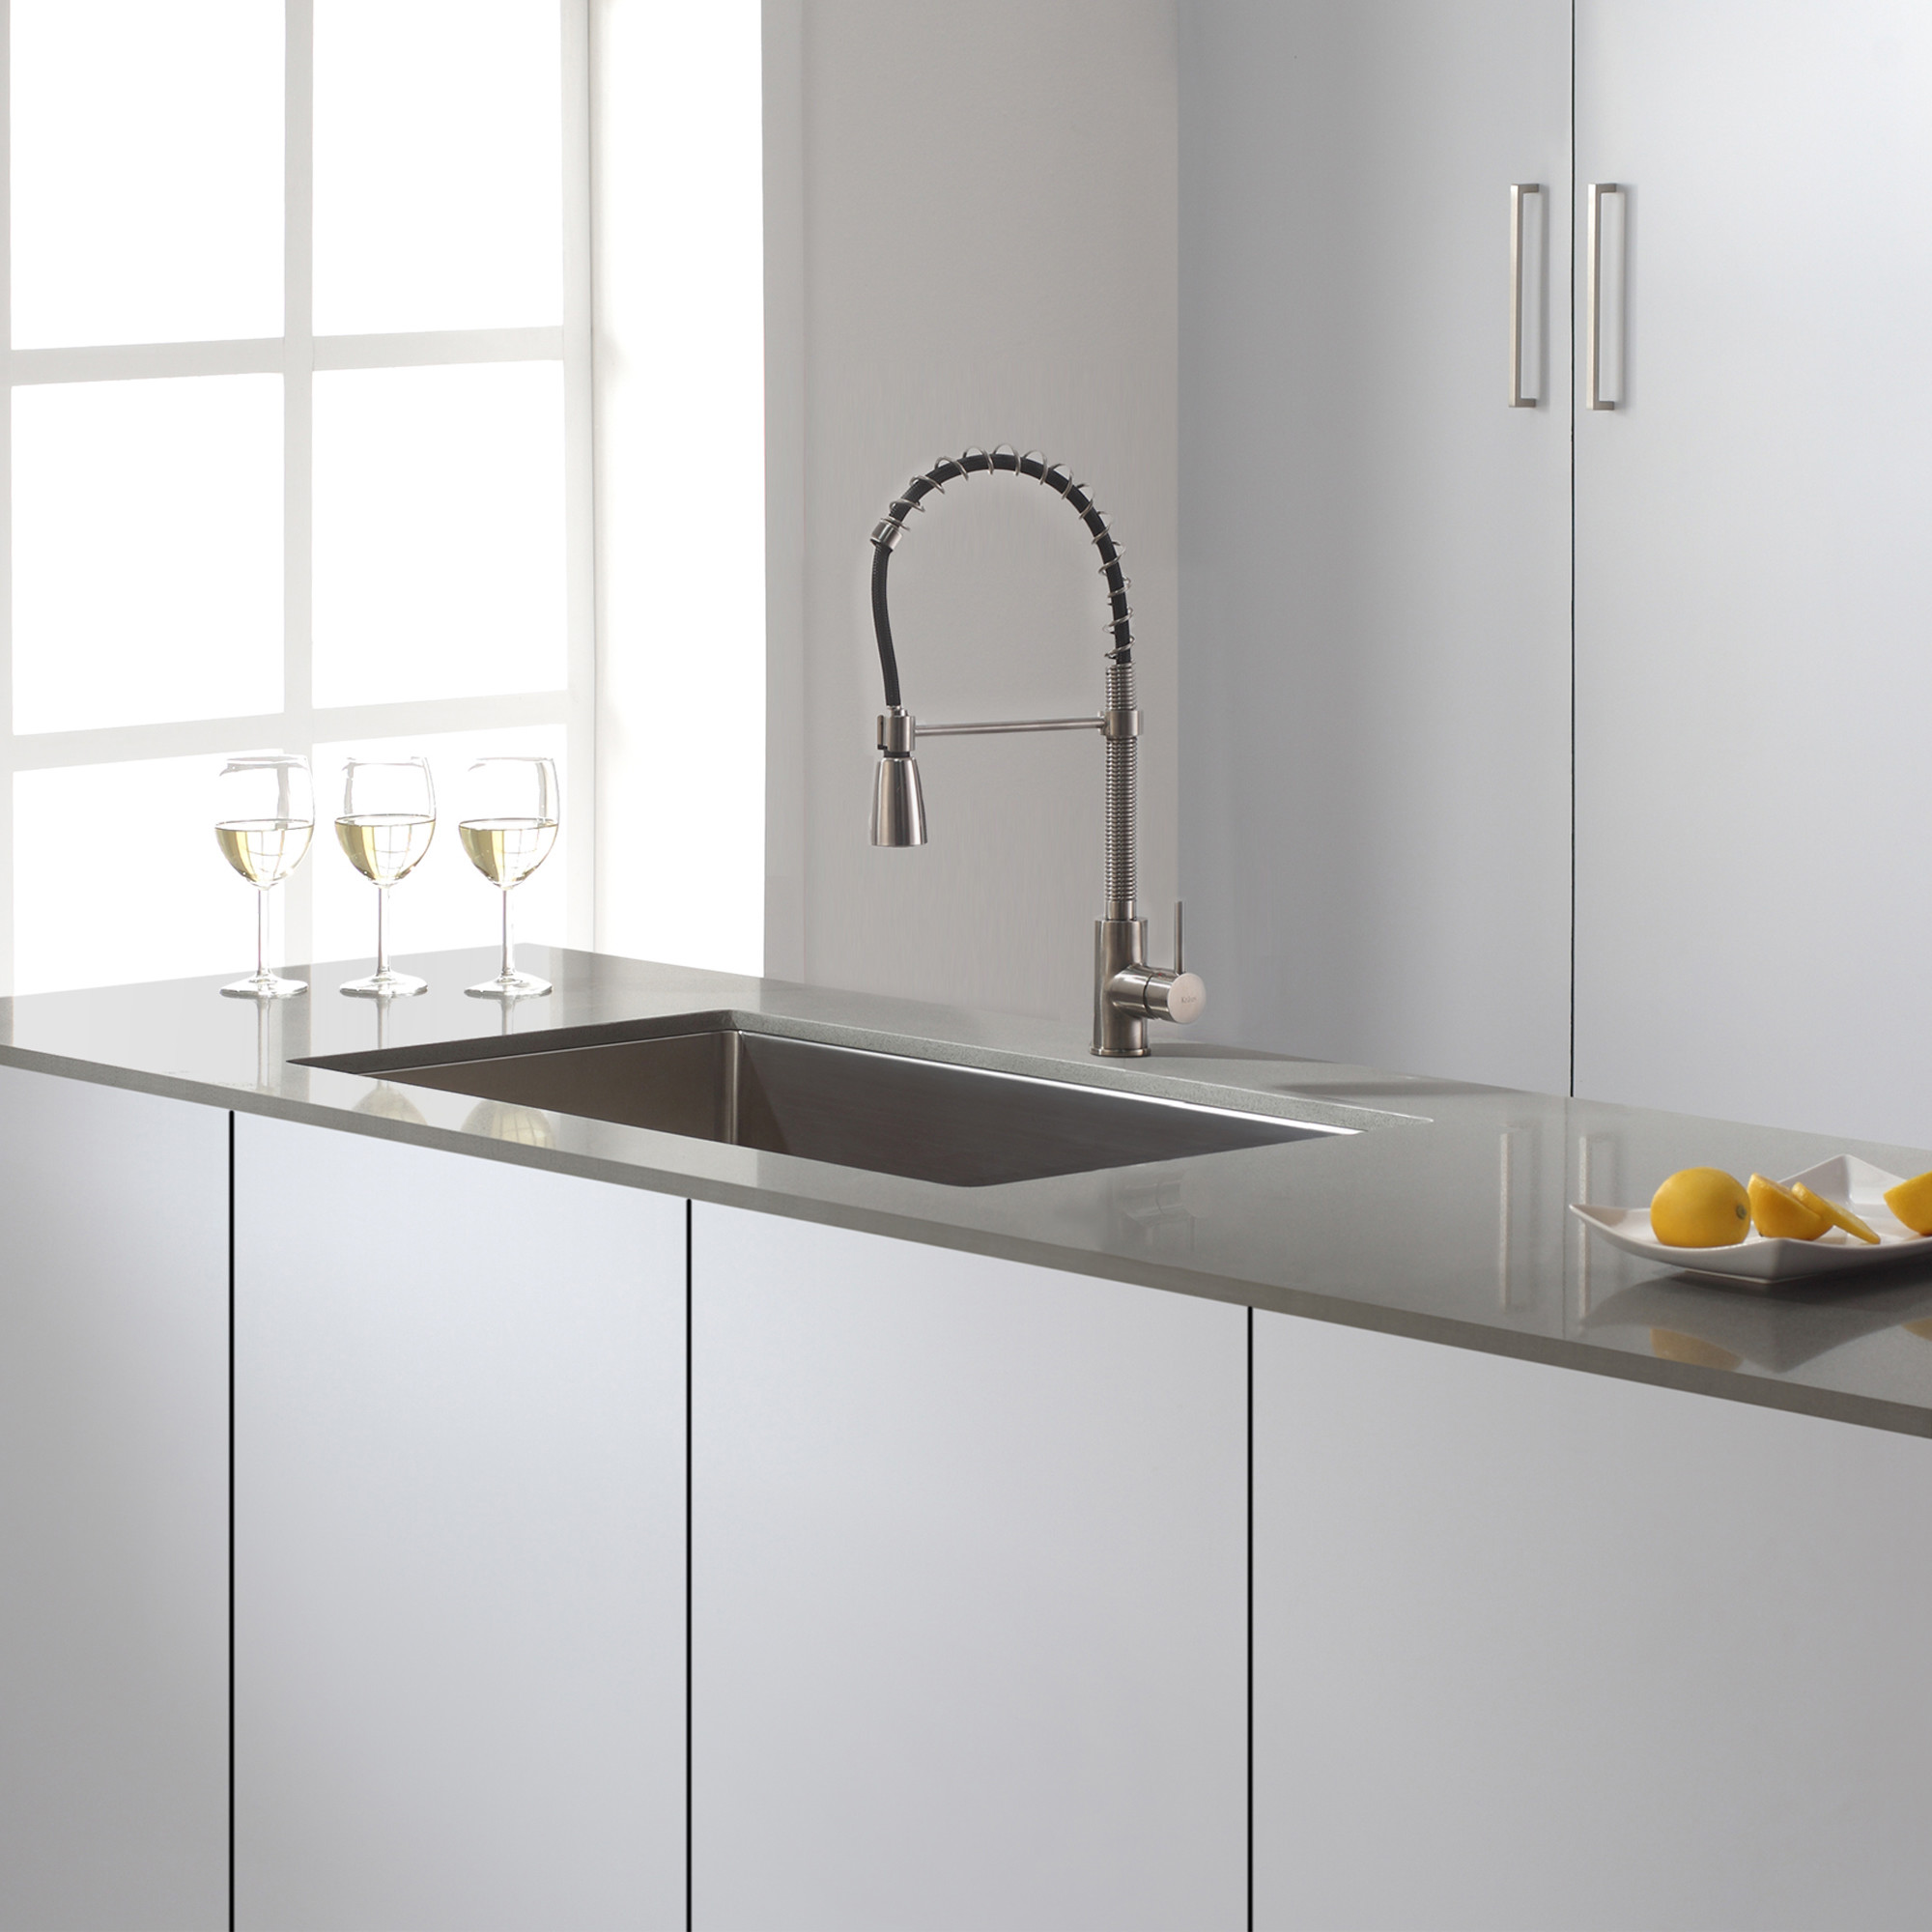 kraus-30-undermount-kitchen-sink